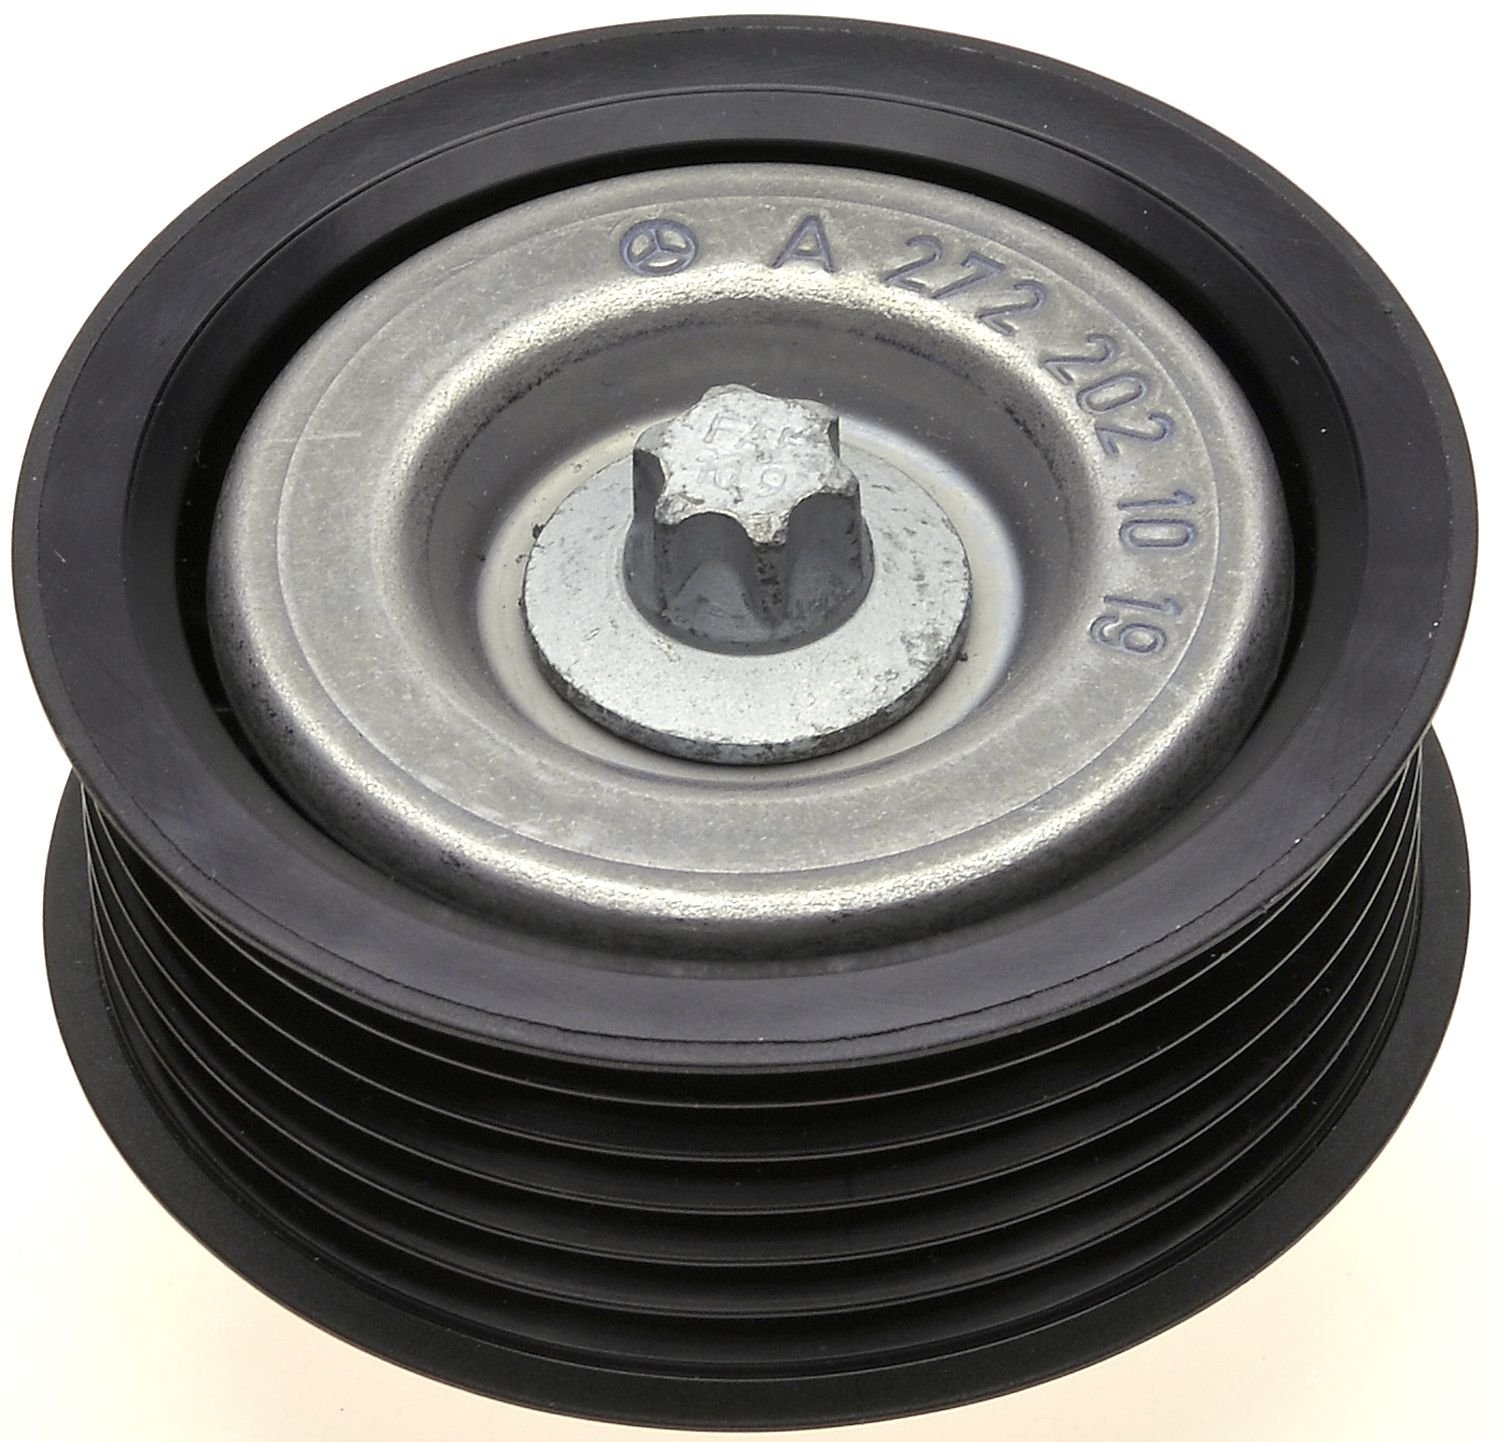 ACDelco 38099 Professional Flanged Idler Pulley with Bolt, Insert, and Dust Shield